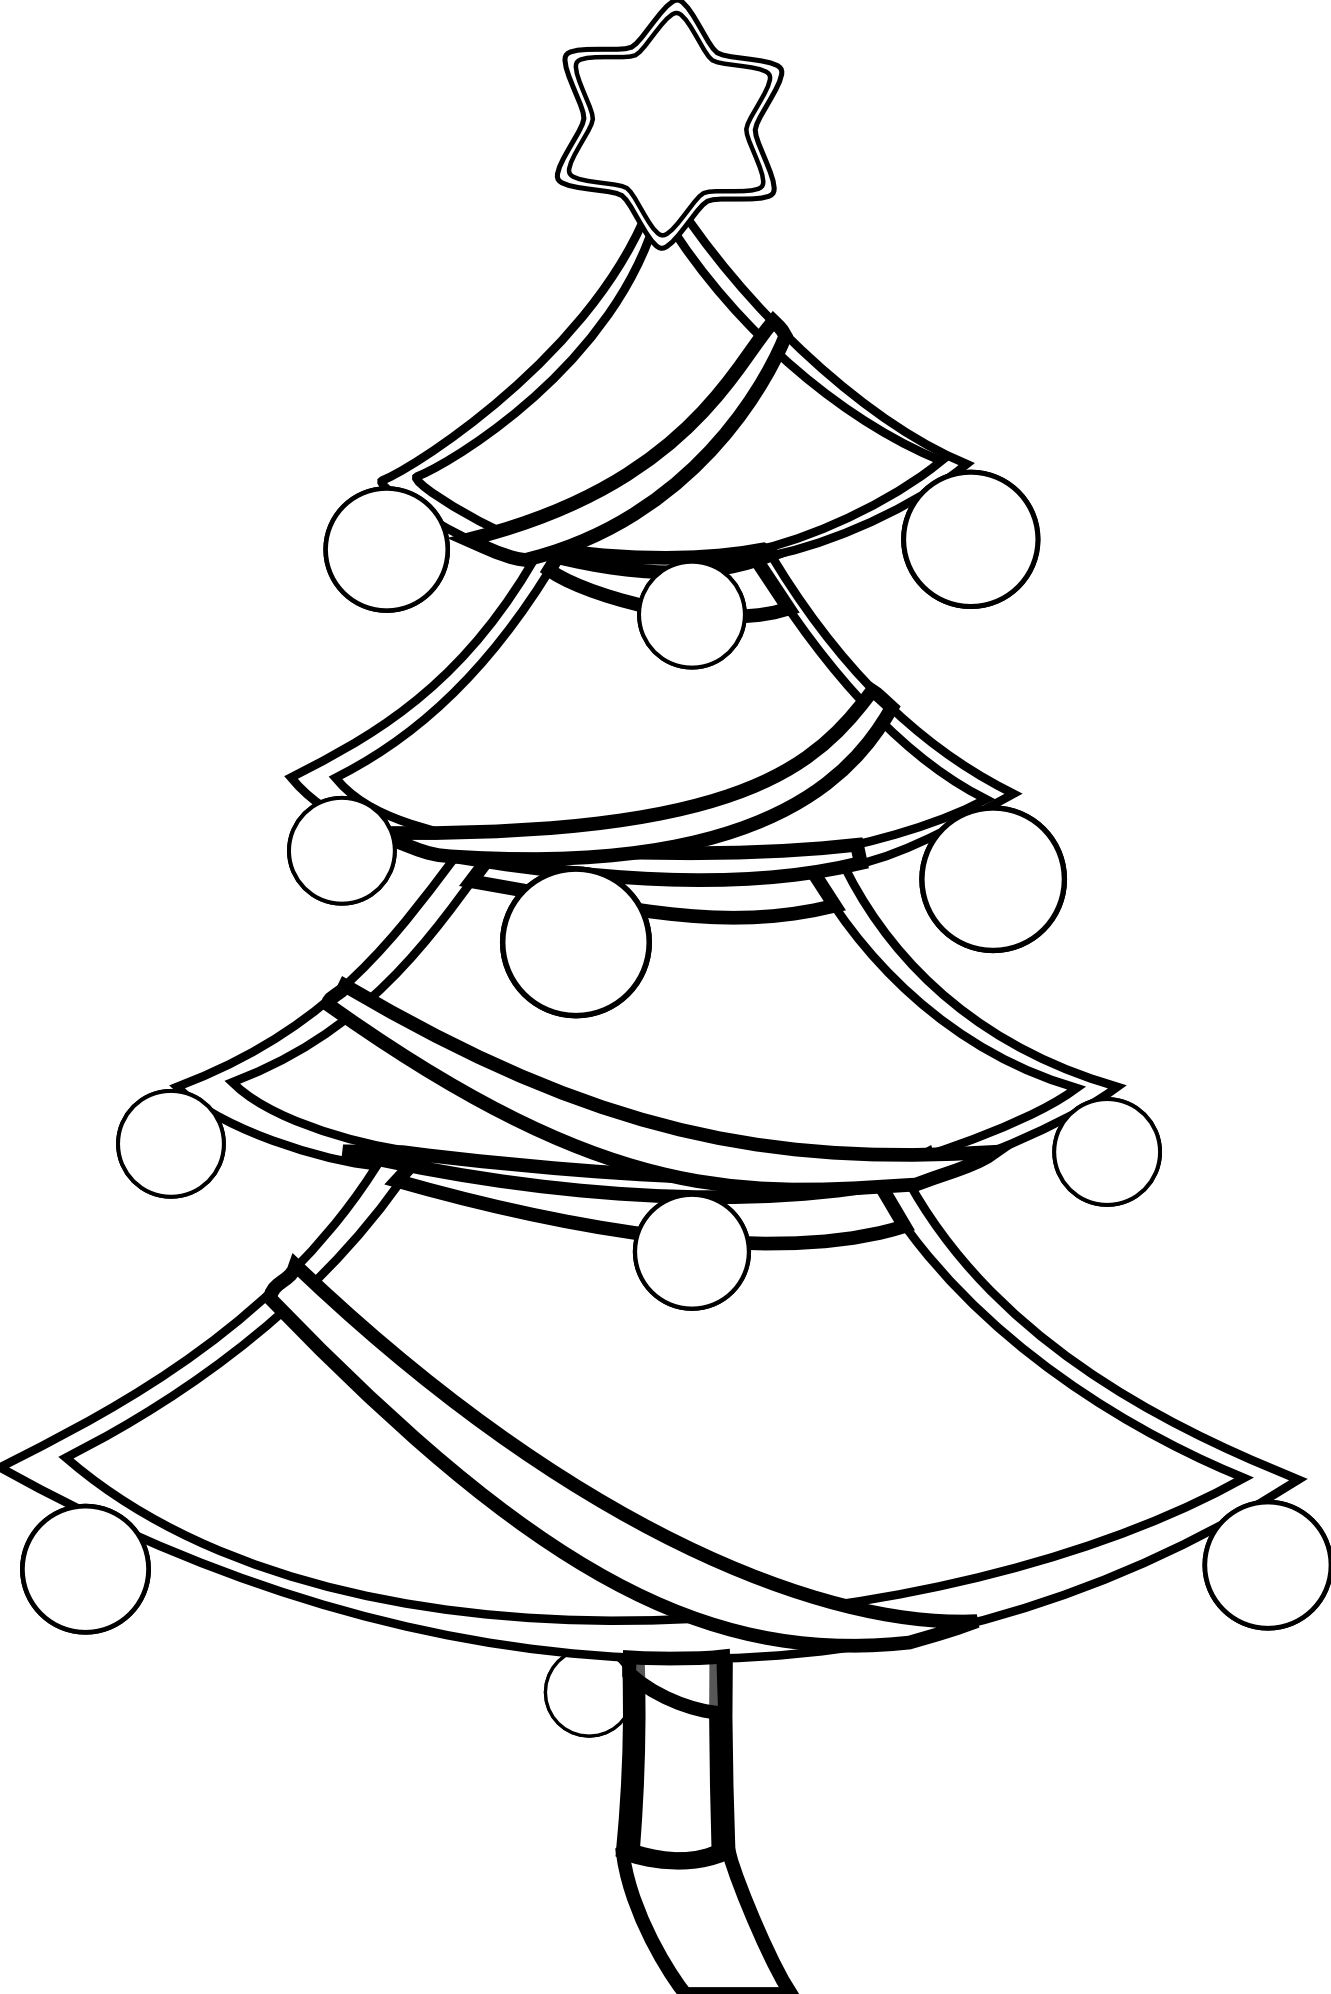 coloring christmas tree black and white christmas tree black and white christmas tree outline tree christmas and coloring black white